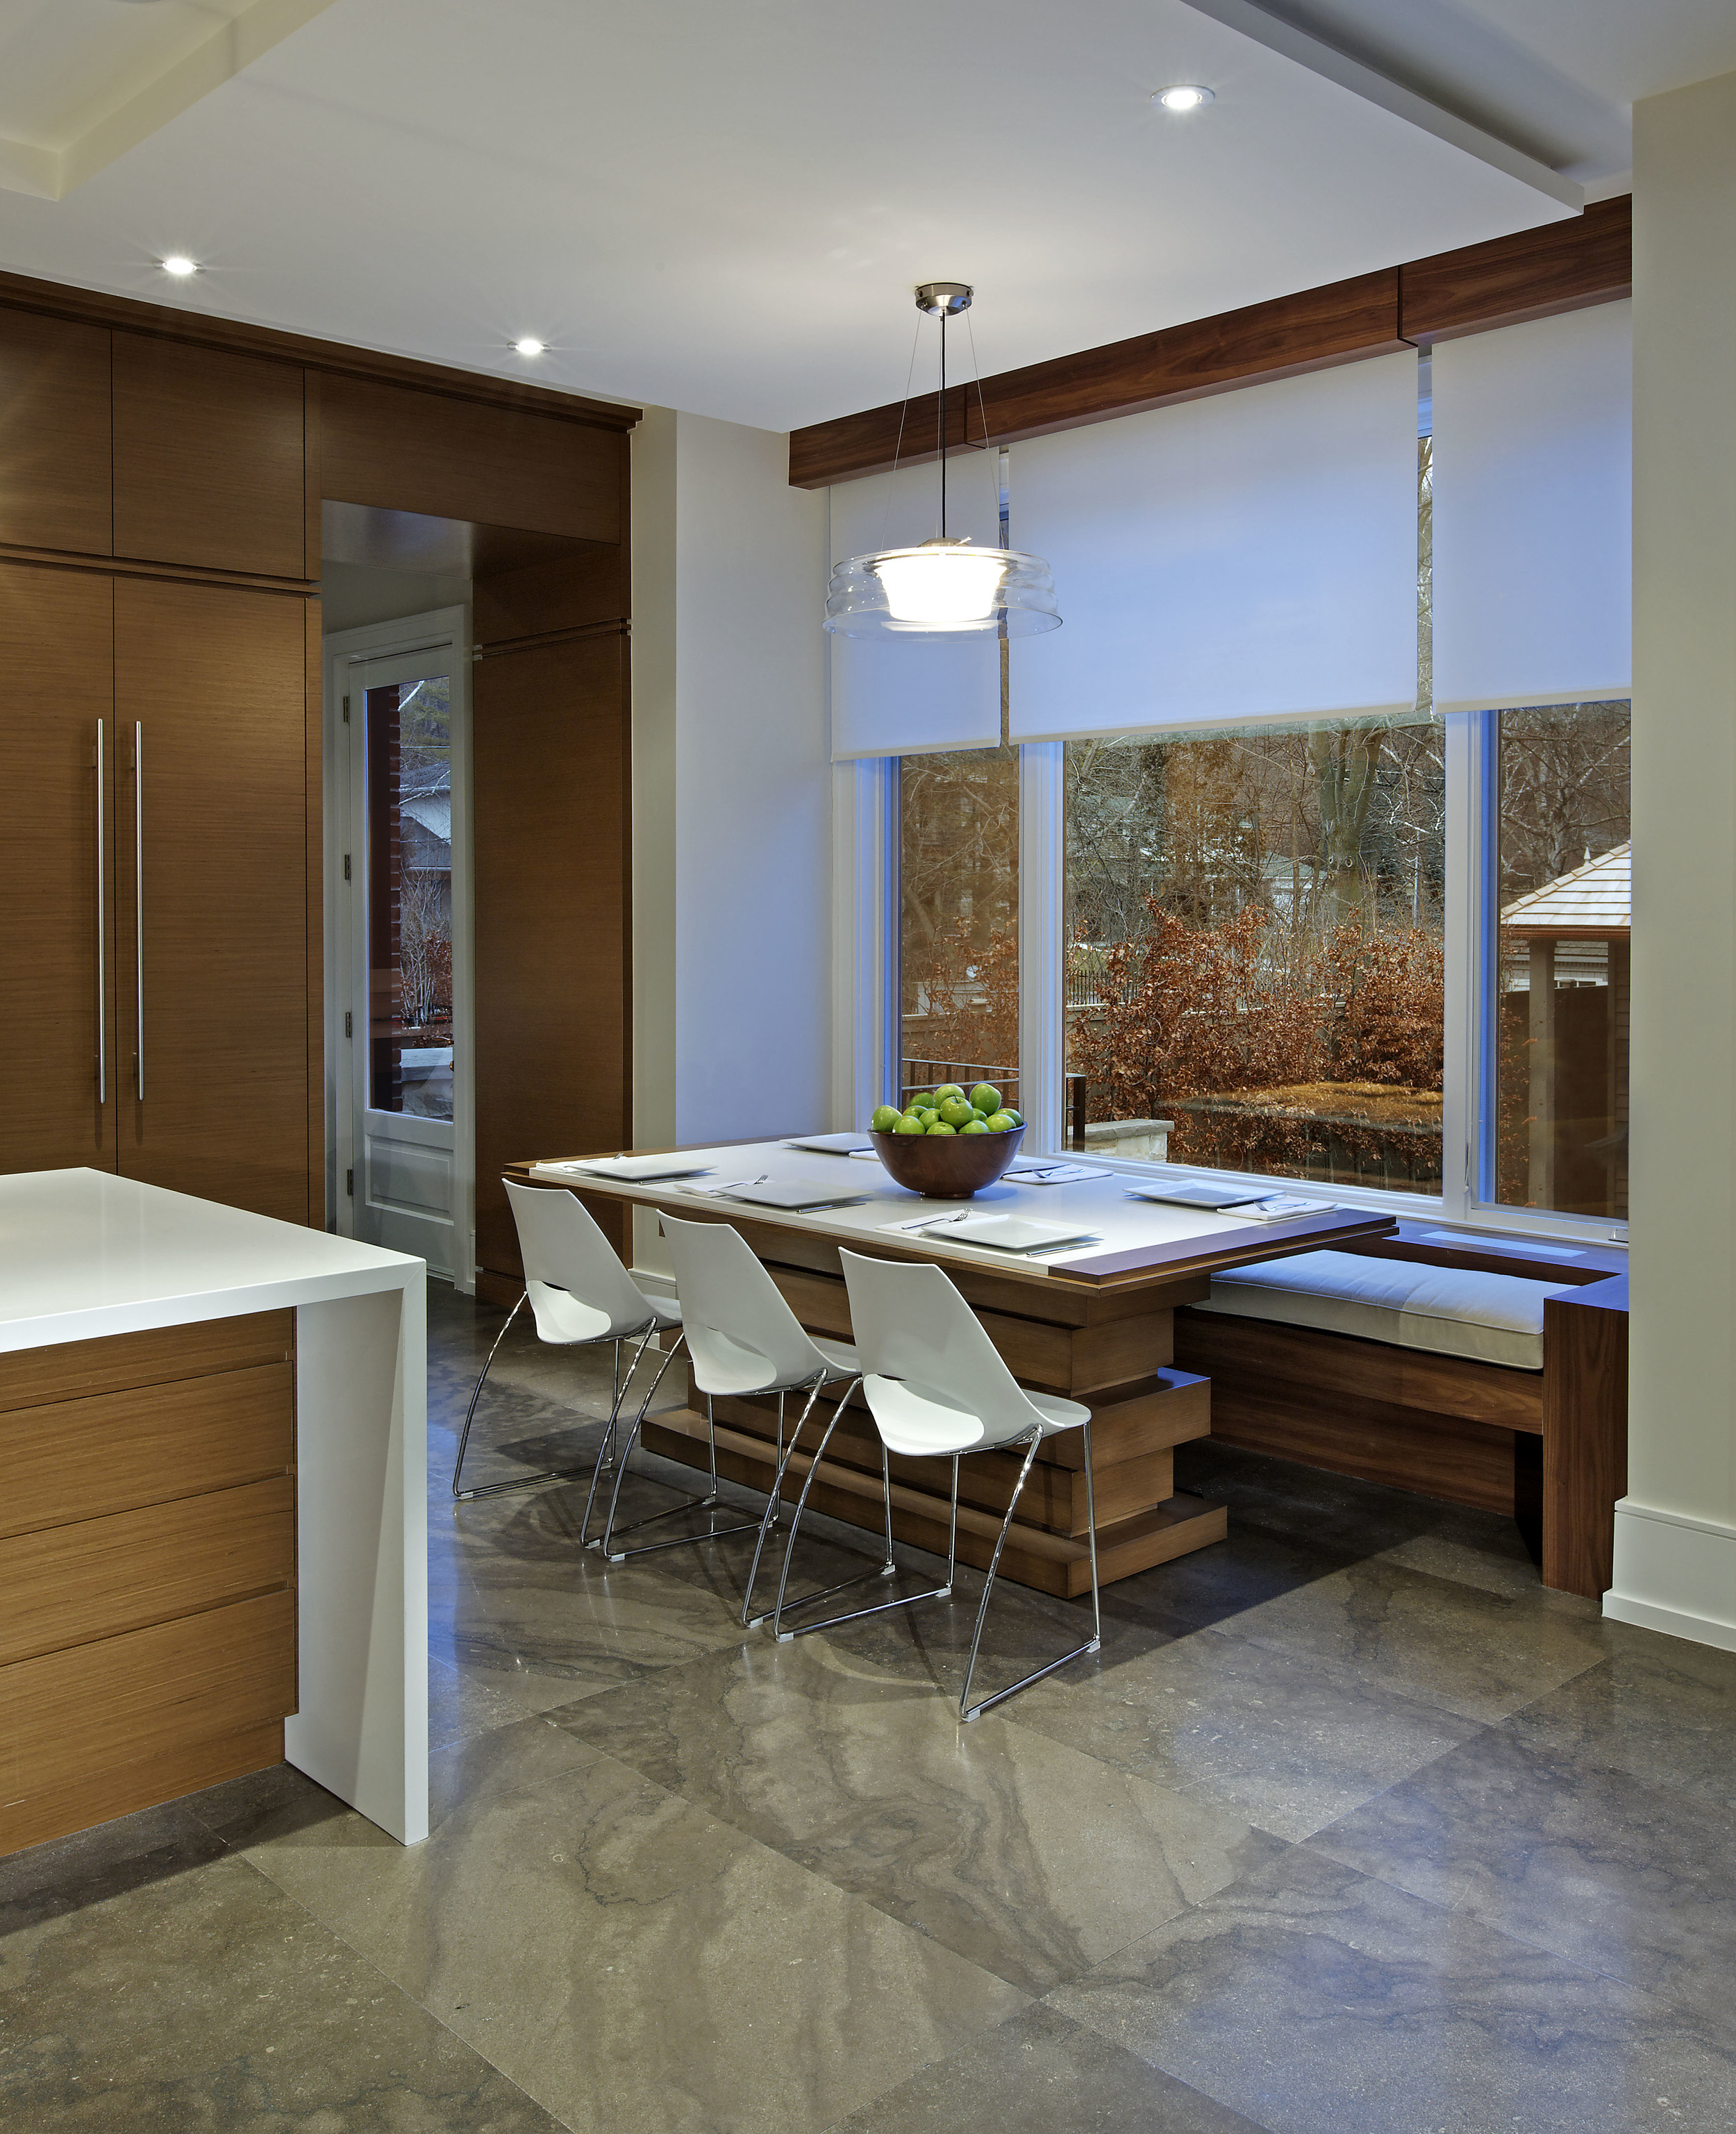 Within its austere modern context, this family home is filled with warm and inviting spaces such as this breakfast nook tucked into the kitchen window area.